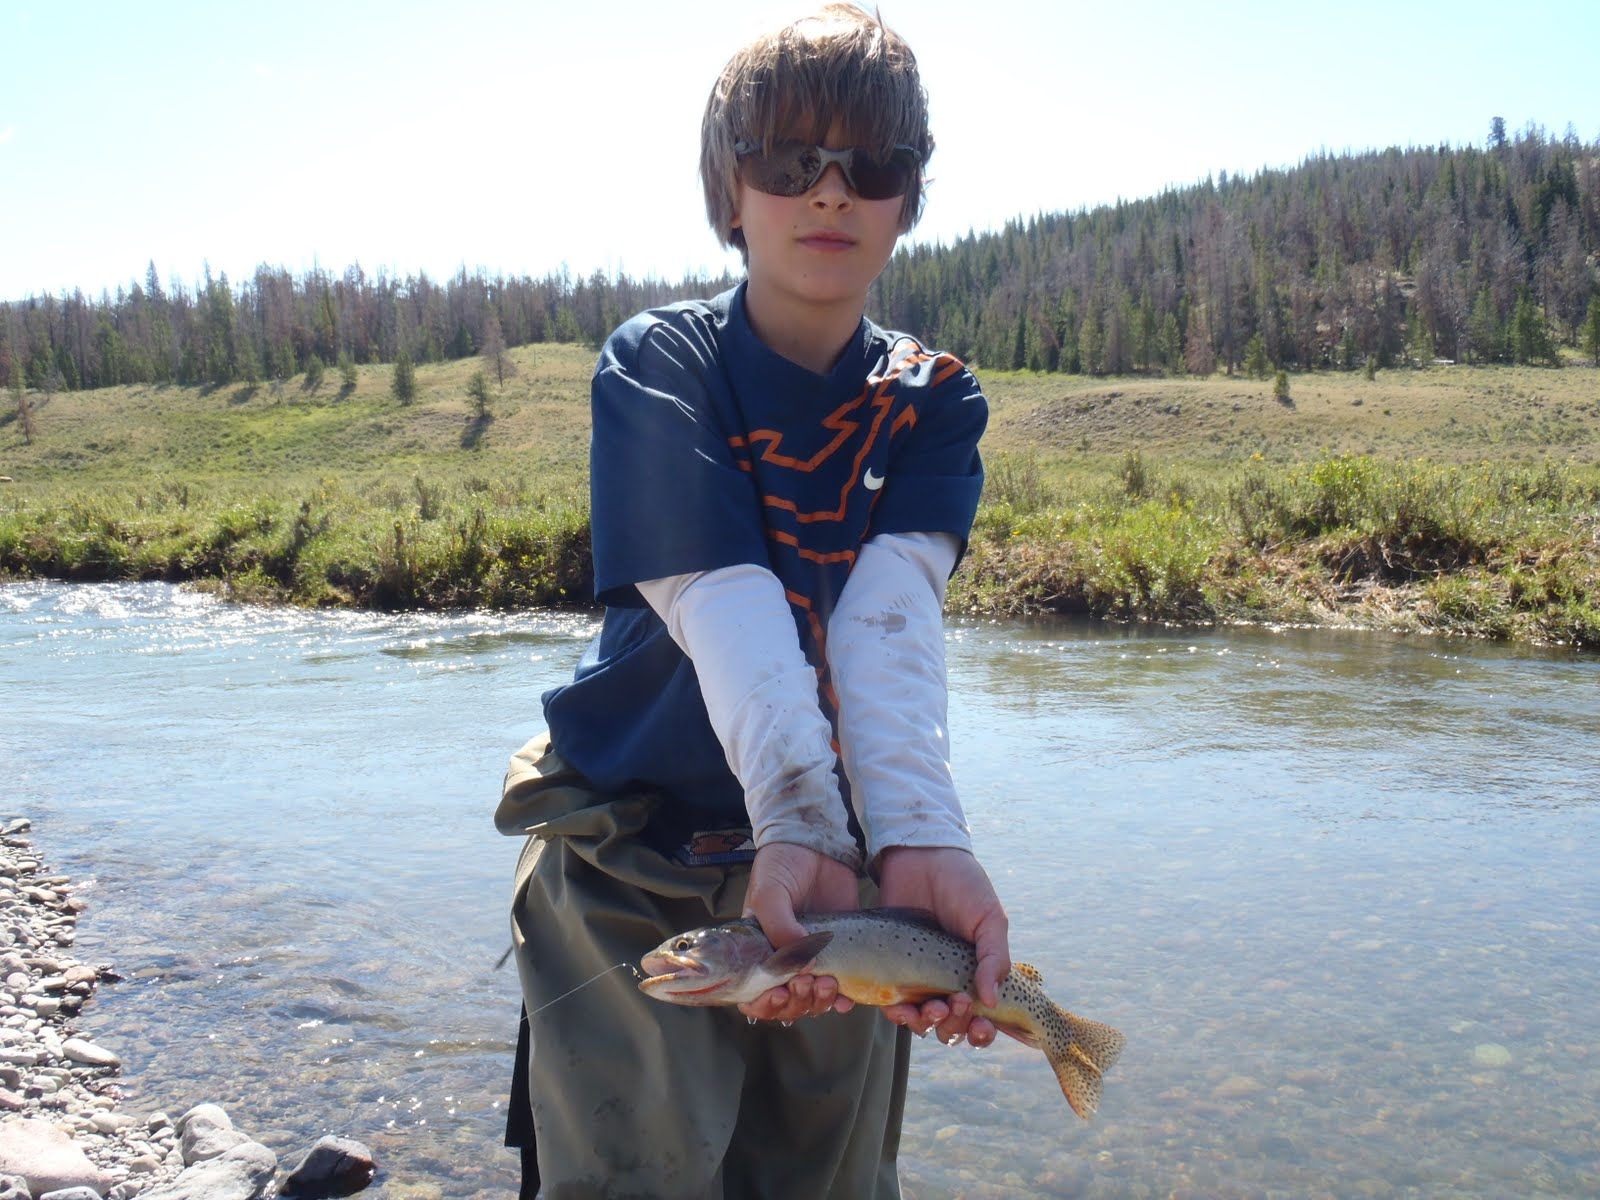 wind river fly fishing report dubois wyoming august 2011